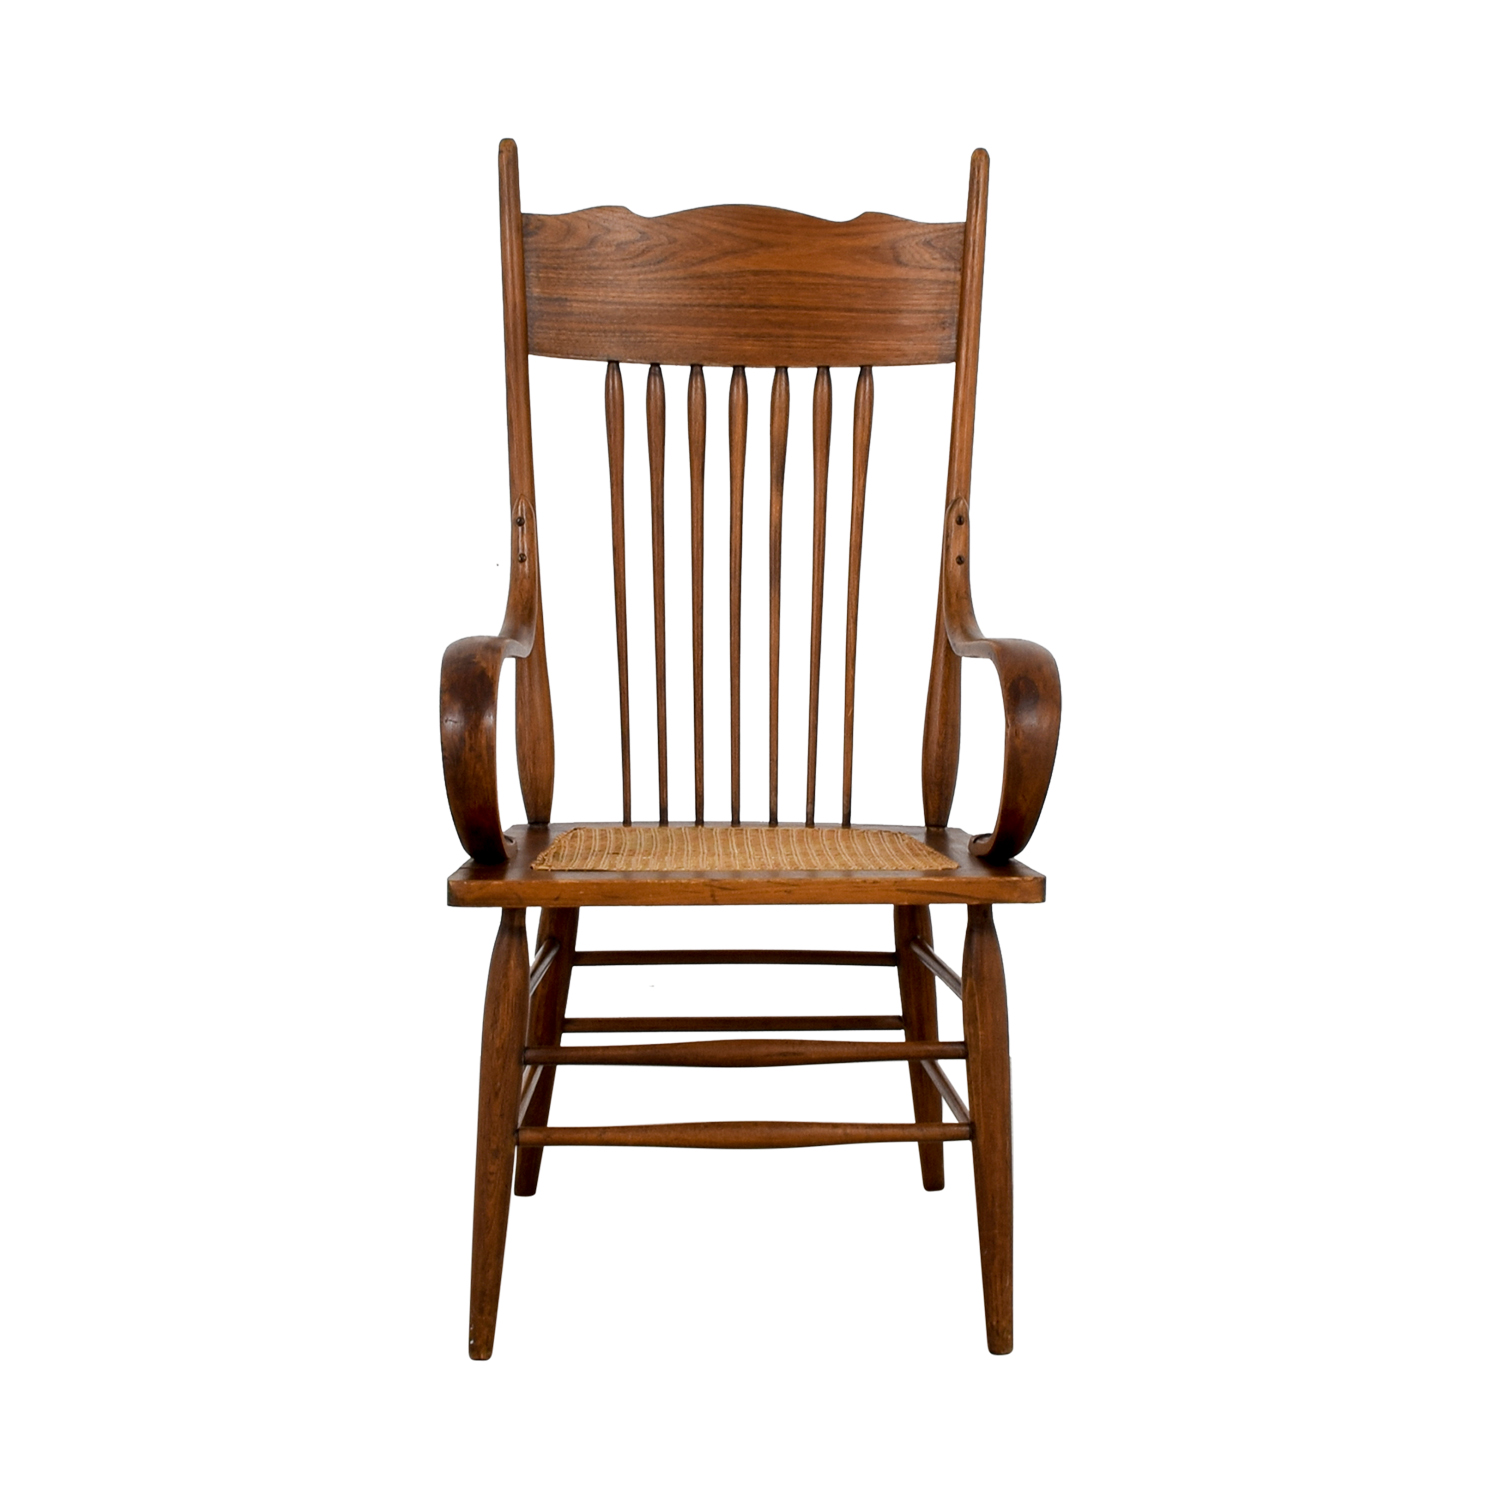 Vintage Wood Cane Armchair / Chairs